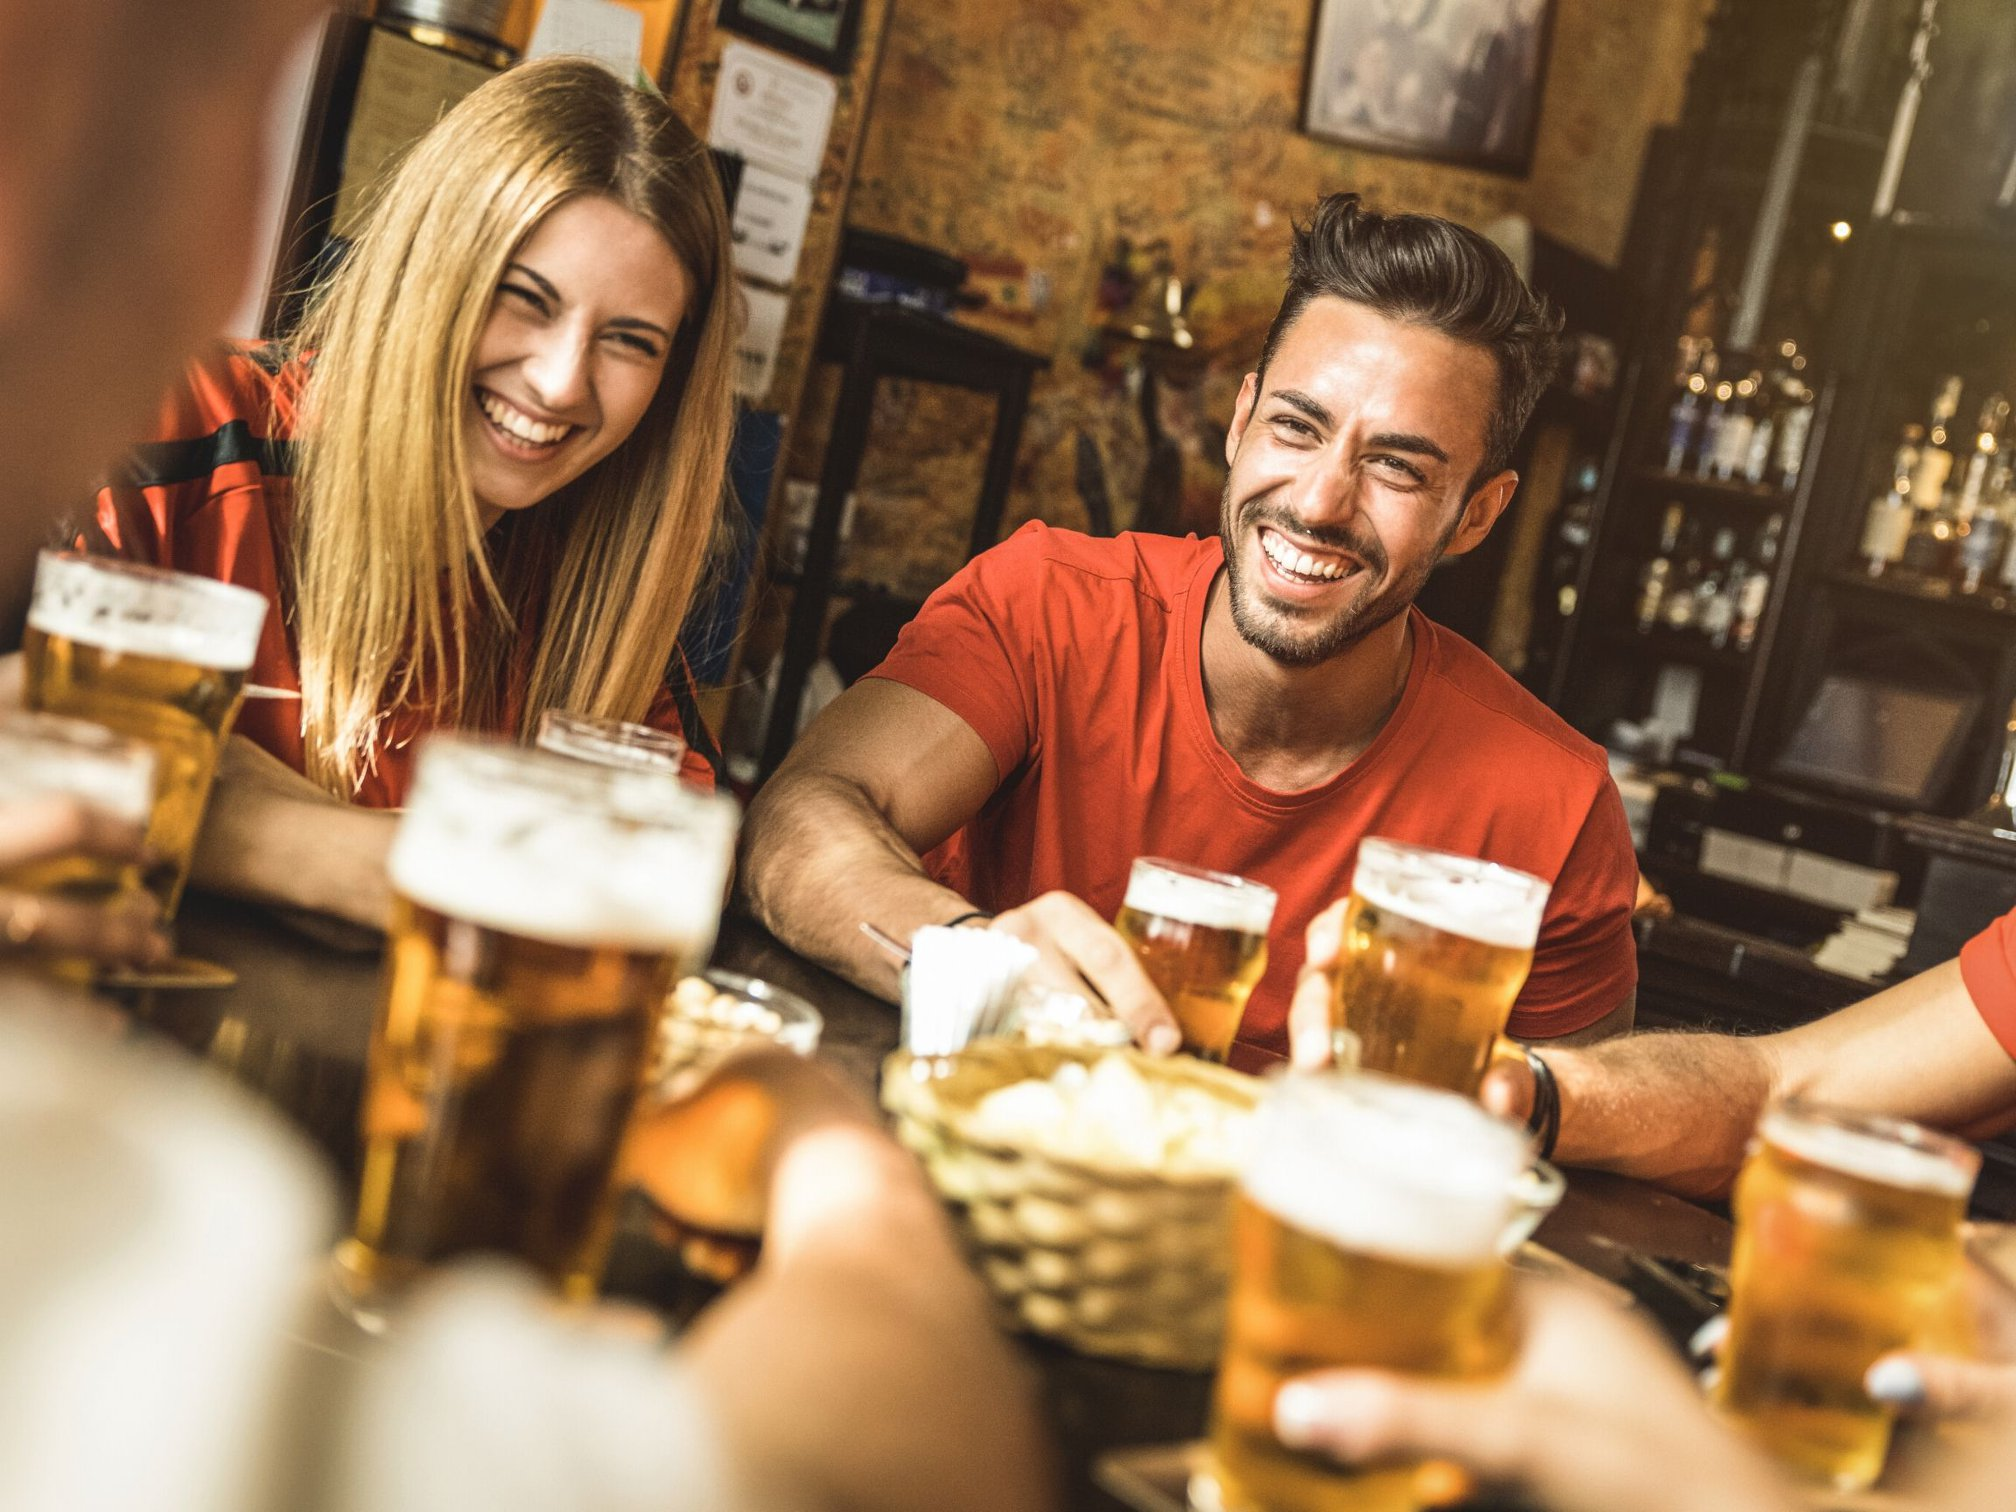 Police operation will focus on compliance as pubs reopen across NSW today